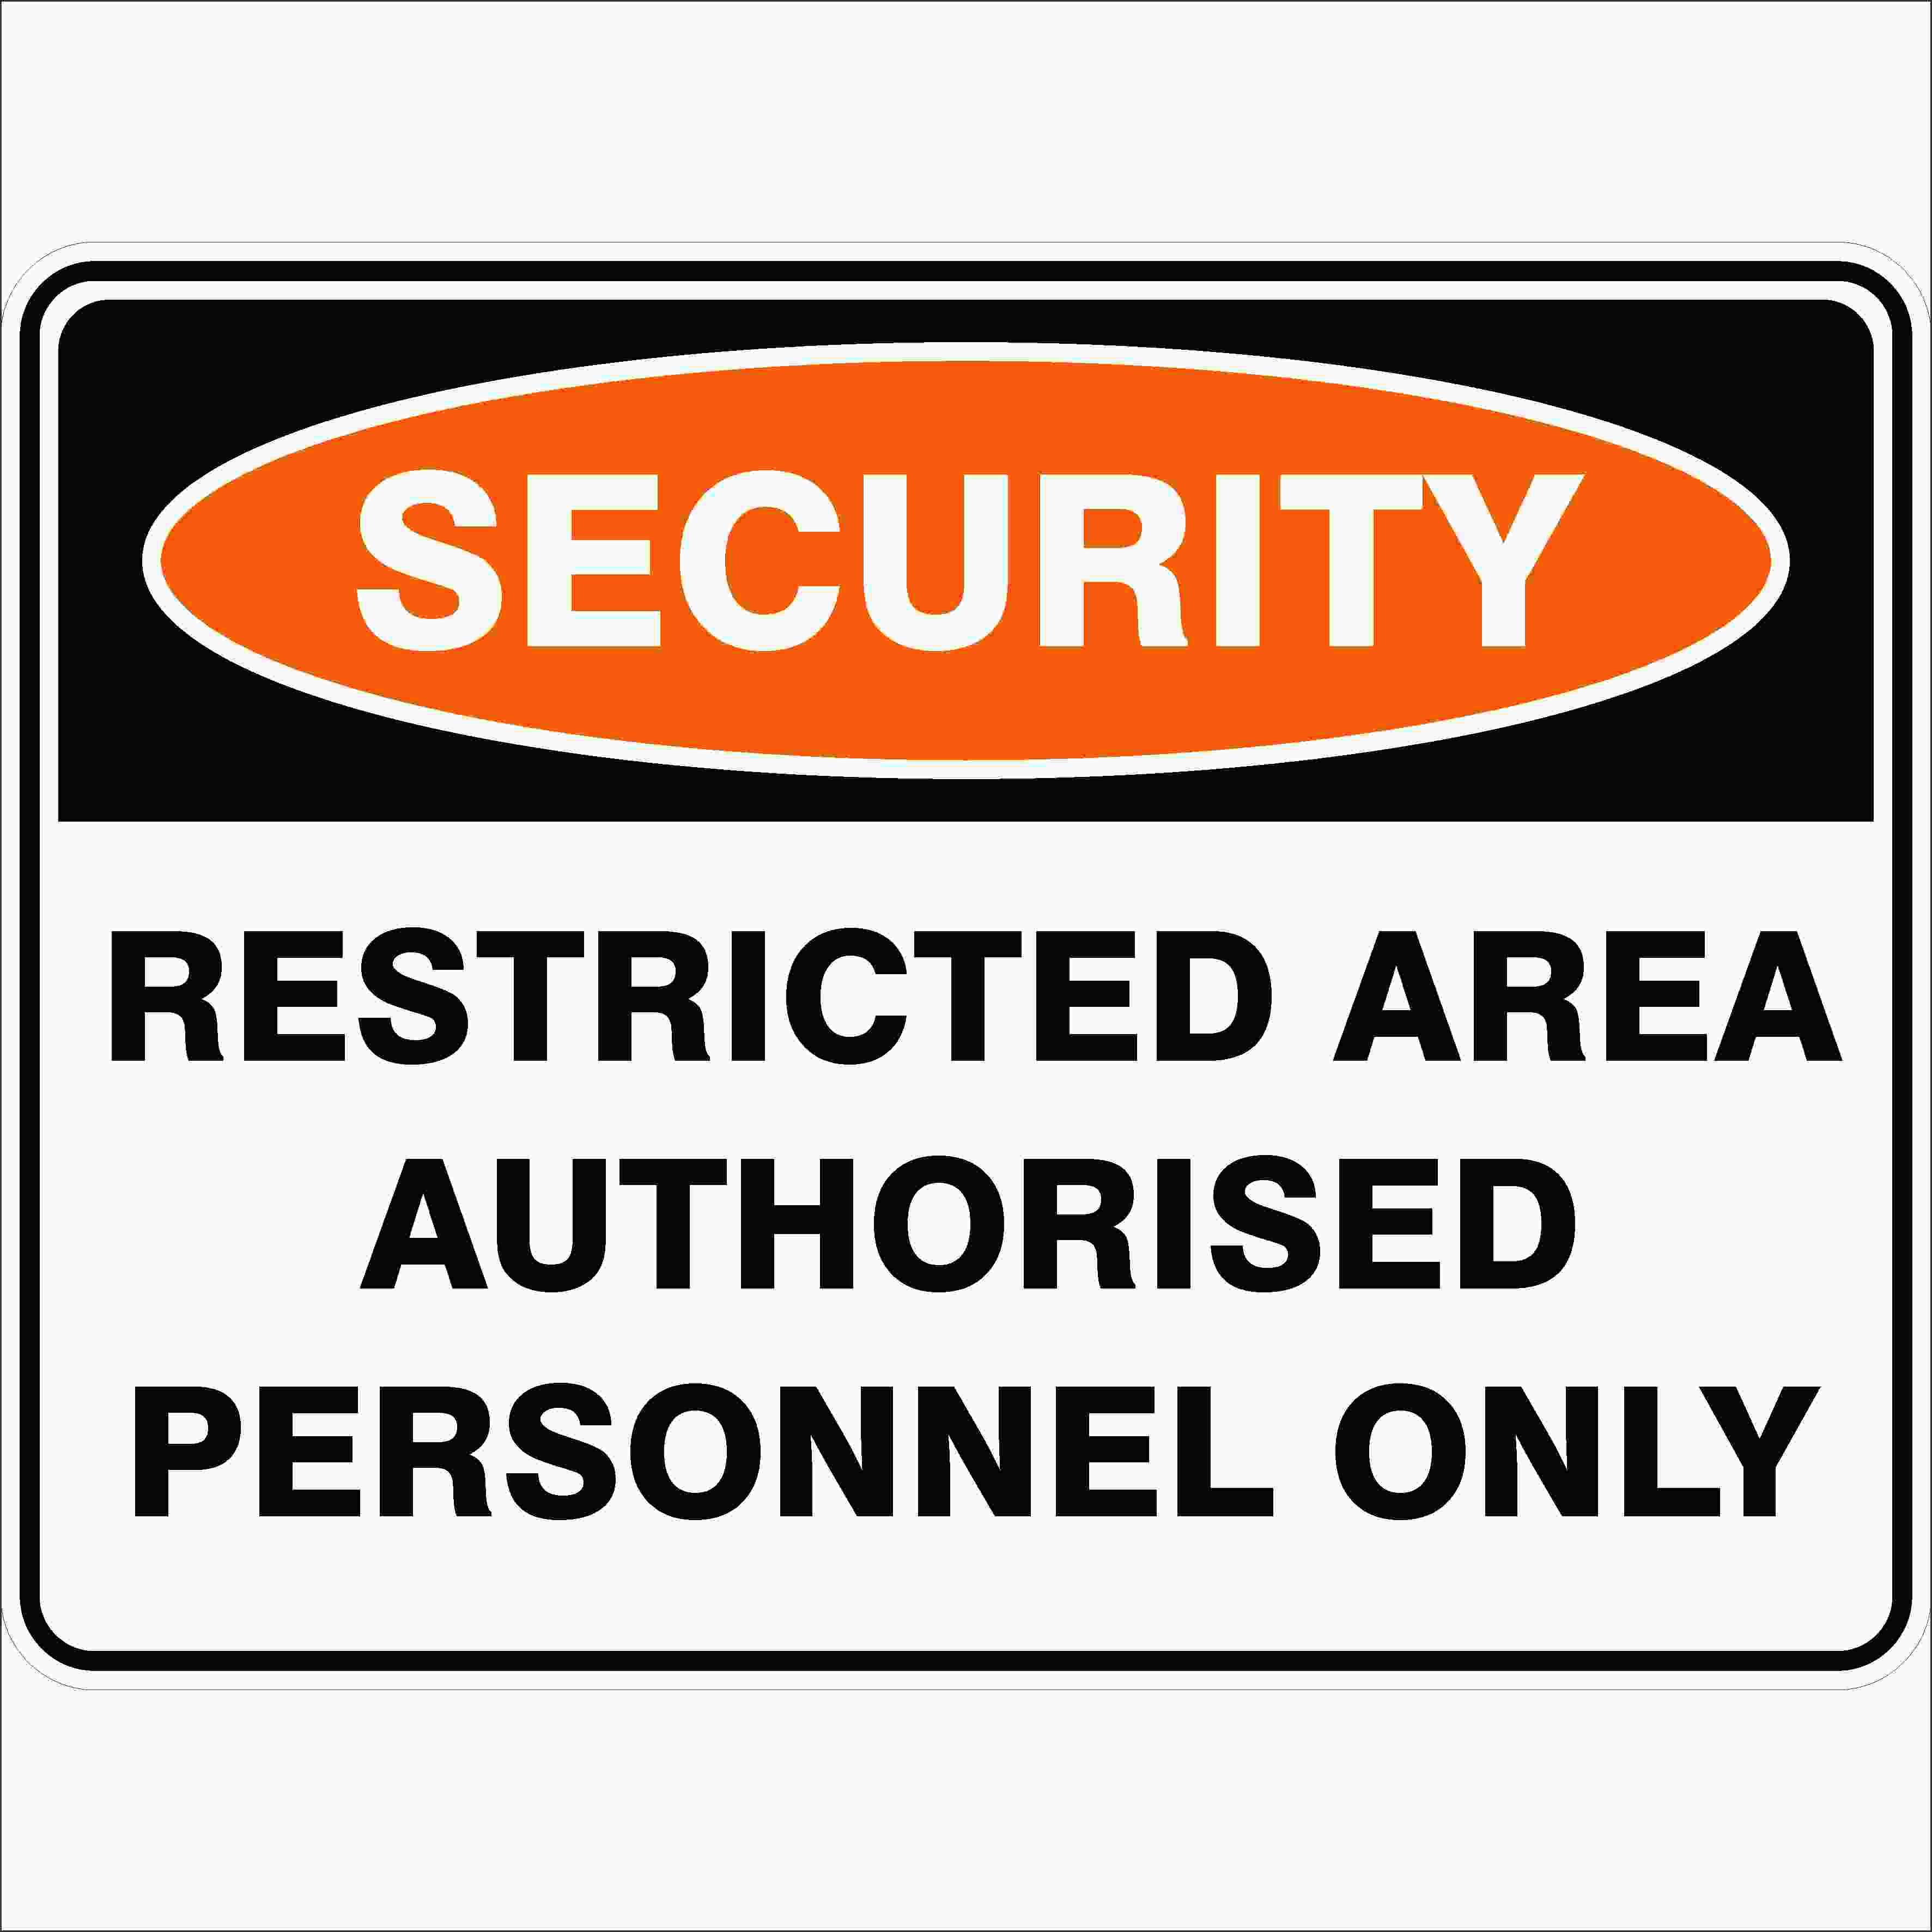 Security Signs RESTRICTED AREA AUTHORISED PERSONNEL ONLY